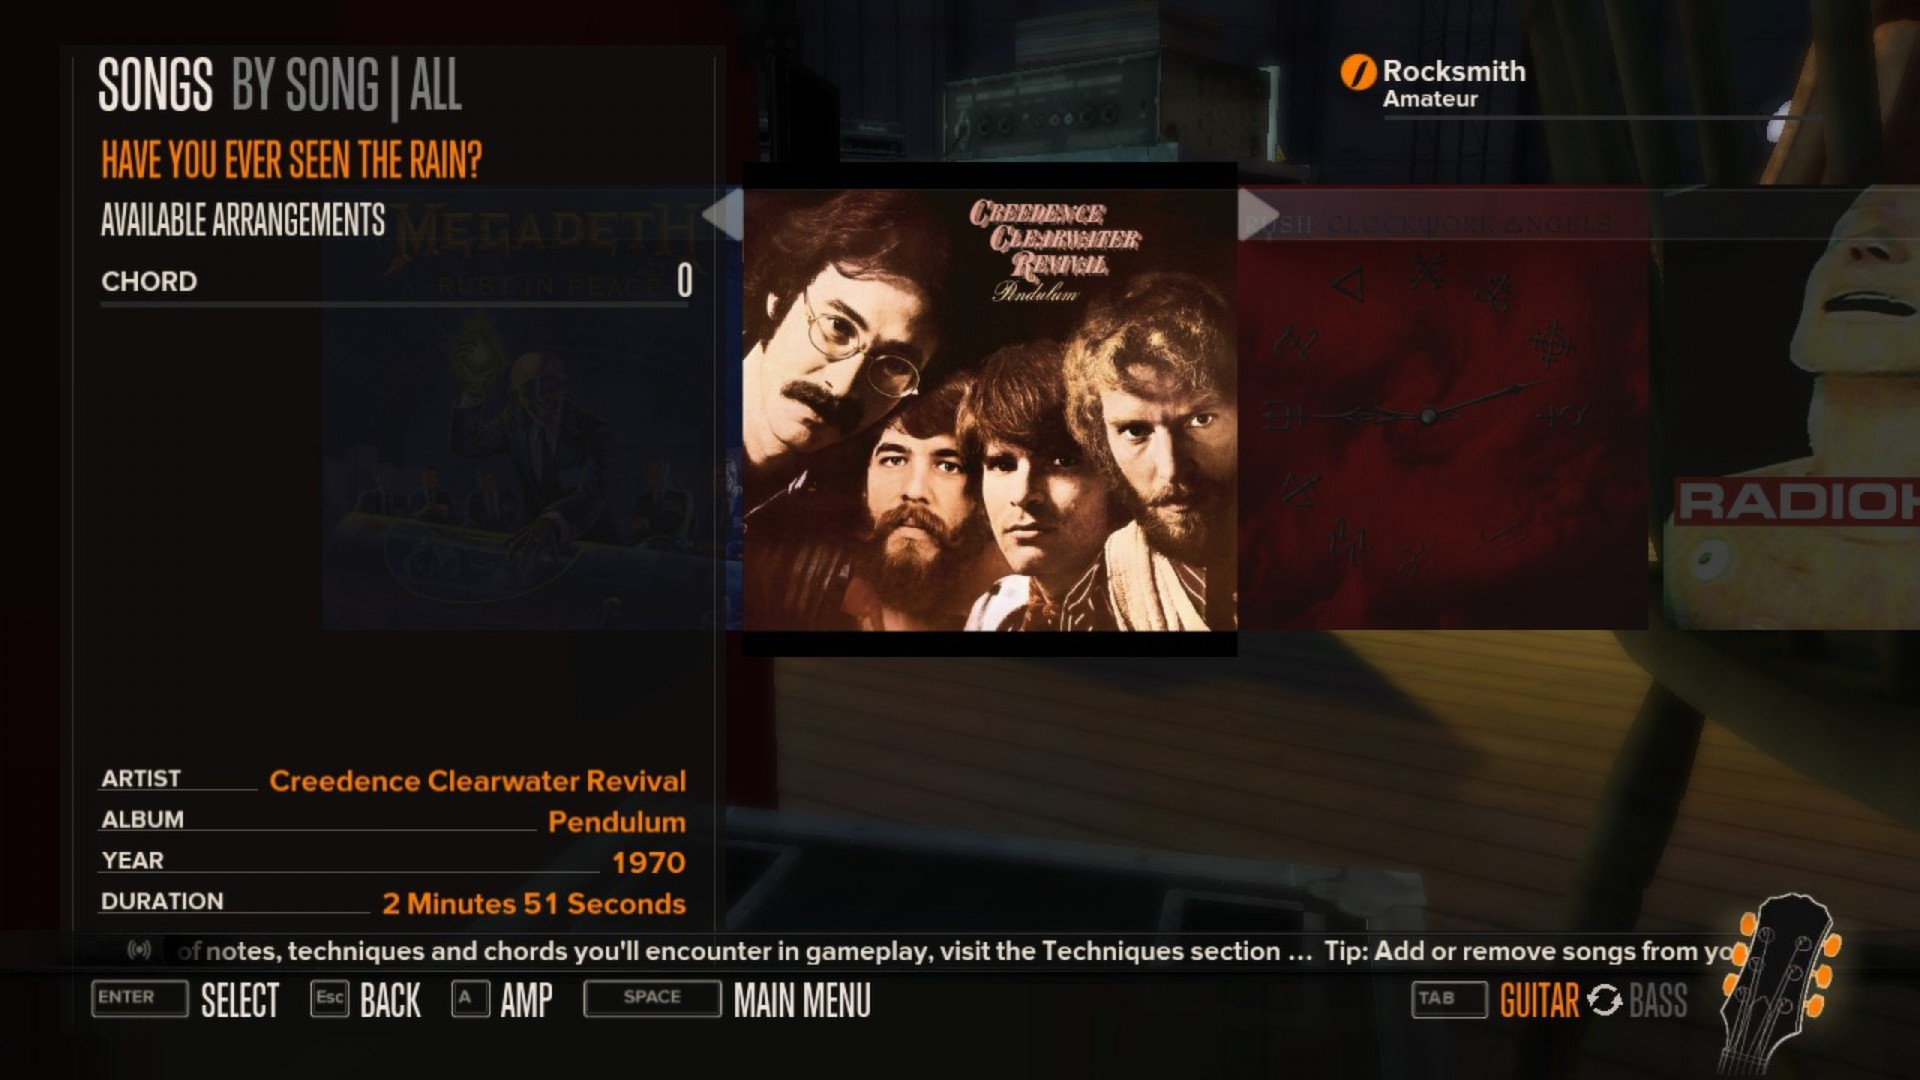 Rocksmith: Creedence Clearwater Revival - Have You Ever Seen the Rain? 2013 pc game Img-1